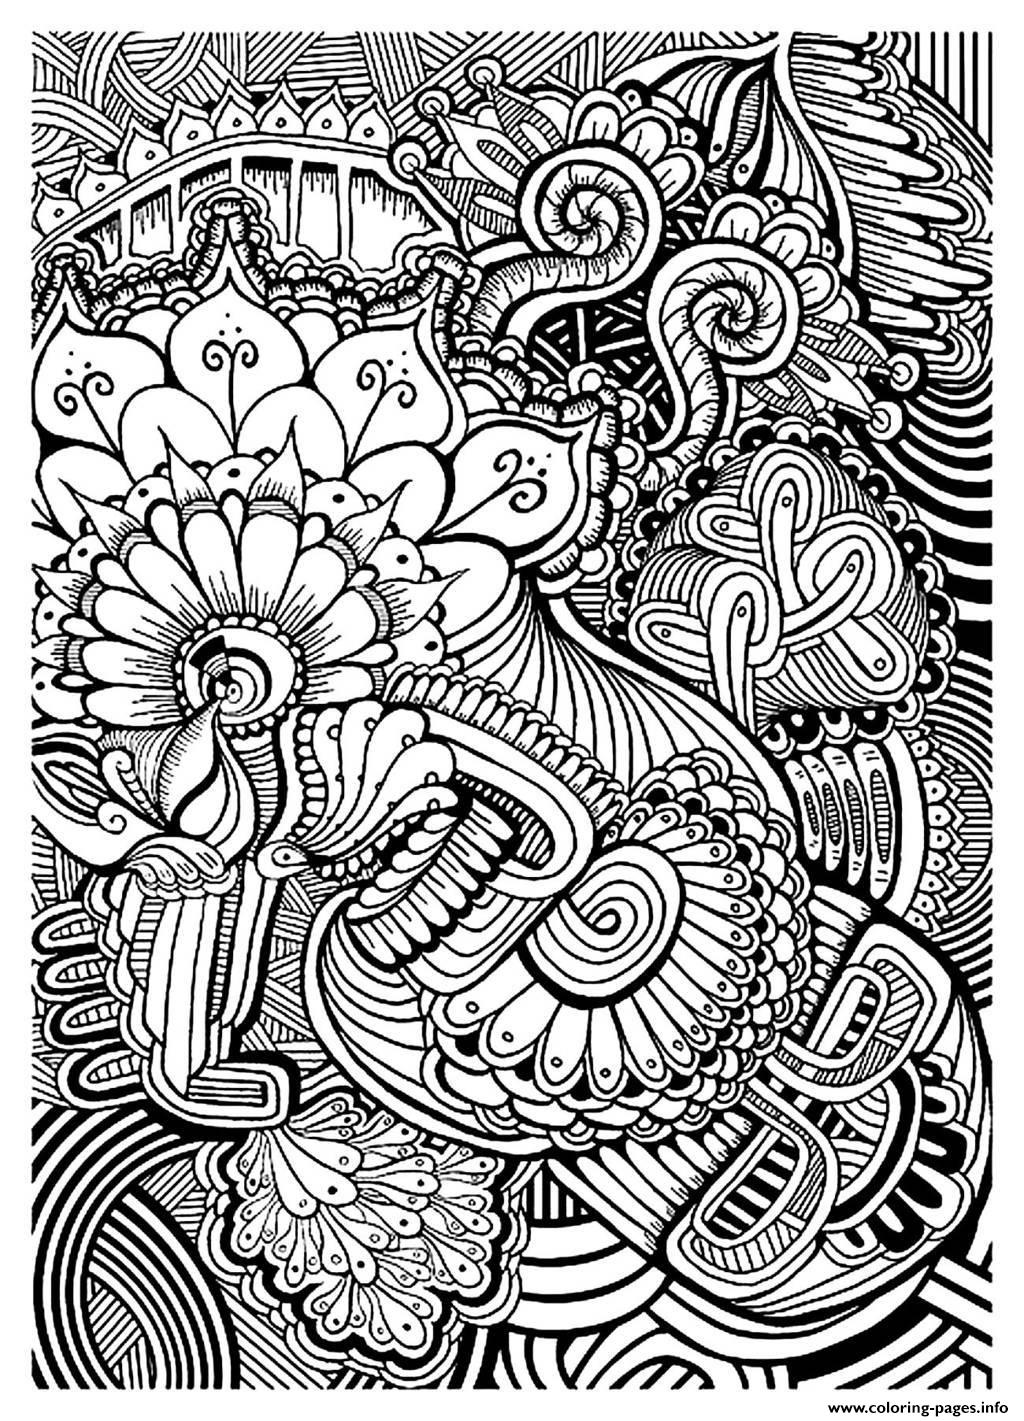 Adult Zen Anti Stress Relax To Print Coloring Pages Download